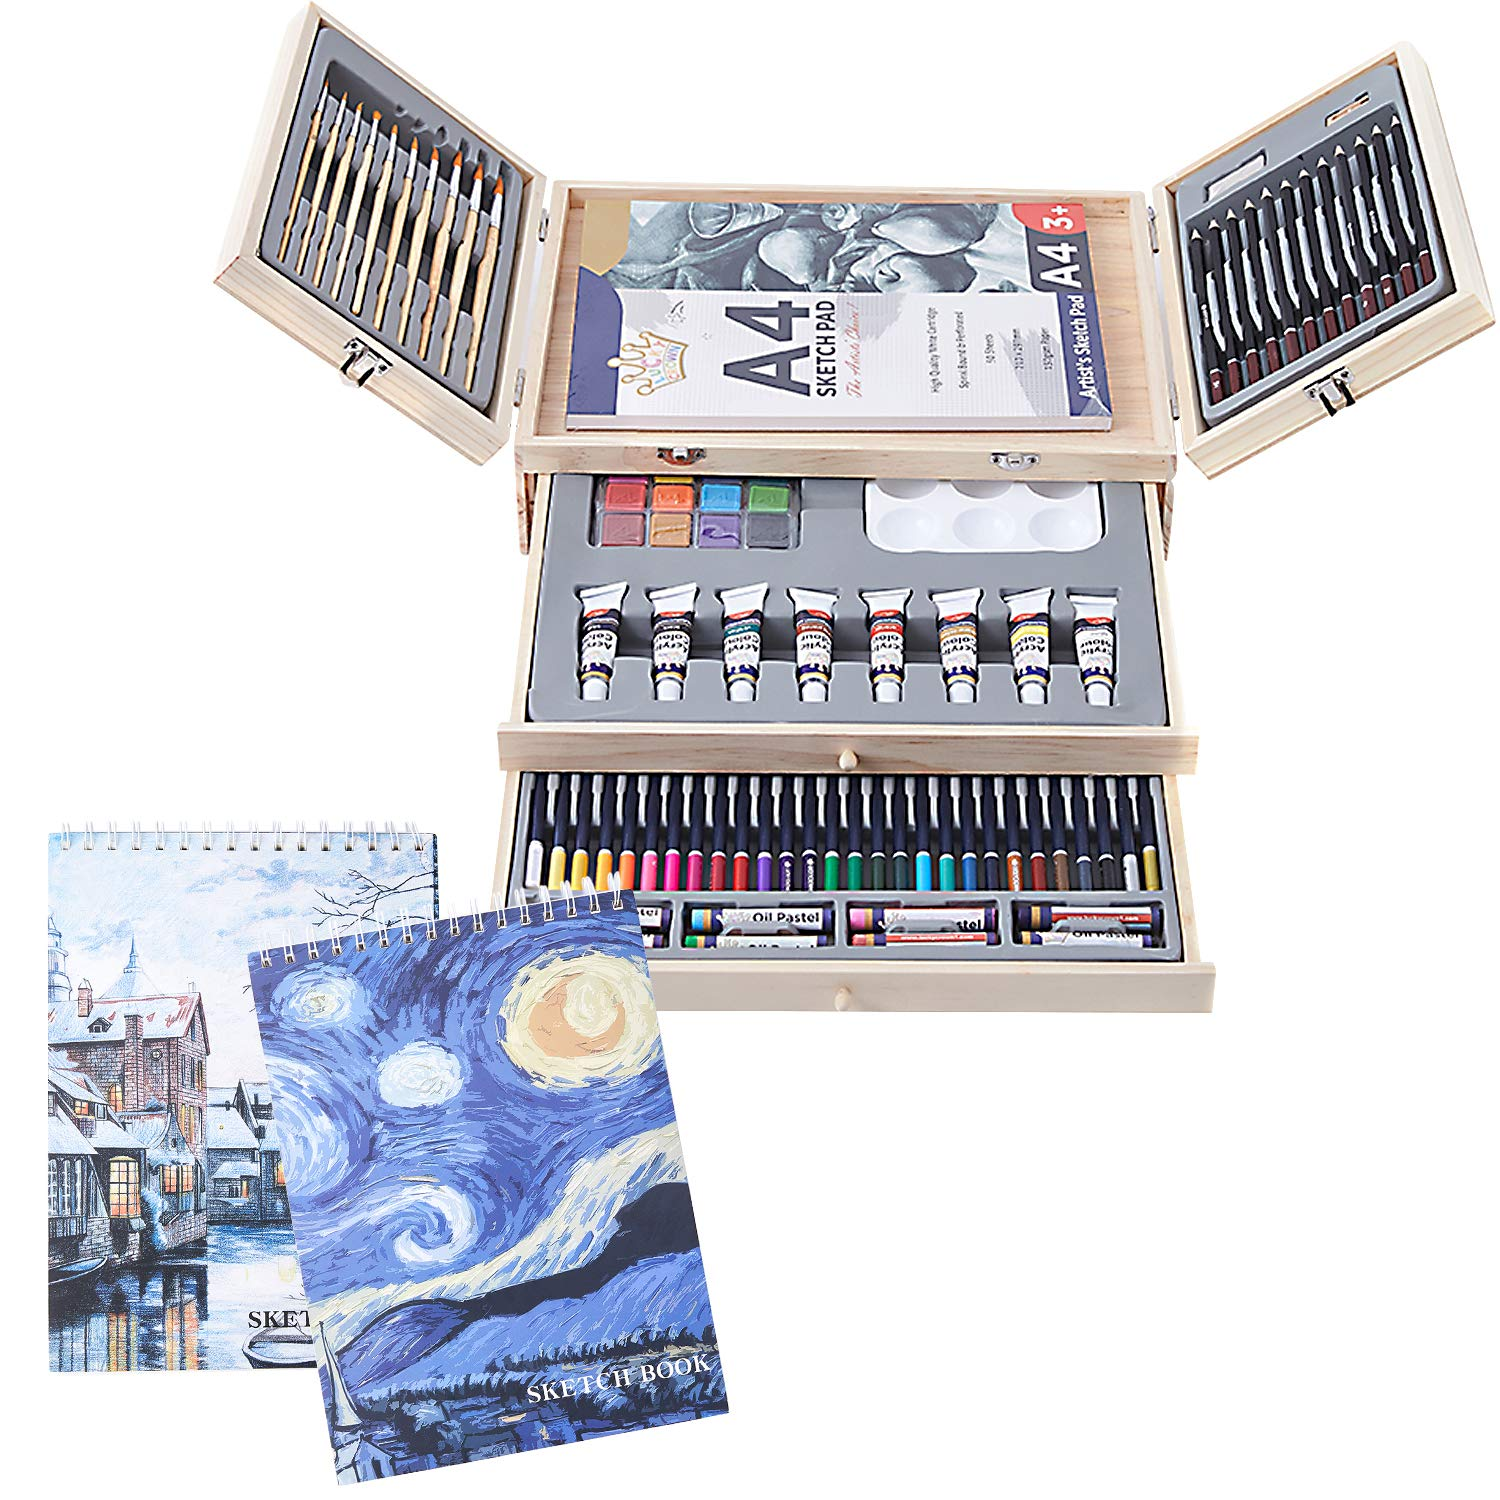 Professional Art Set 85 Piece Deluxe Art Set in Portable Wooden Case-Painting & Drawing Set Professional Art Kit with 3 x 50 Page Drawing Pad for Kids, Teens and Adults/Gift